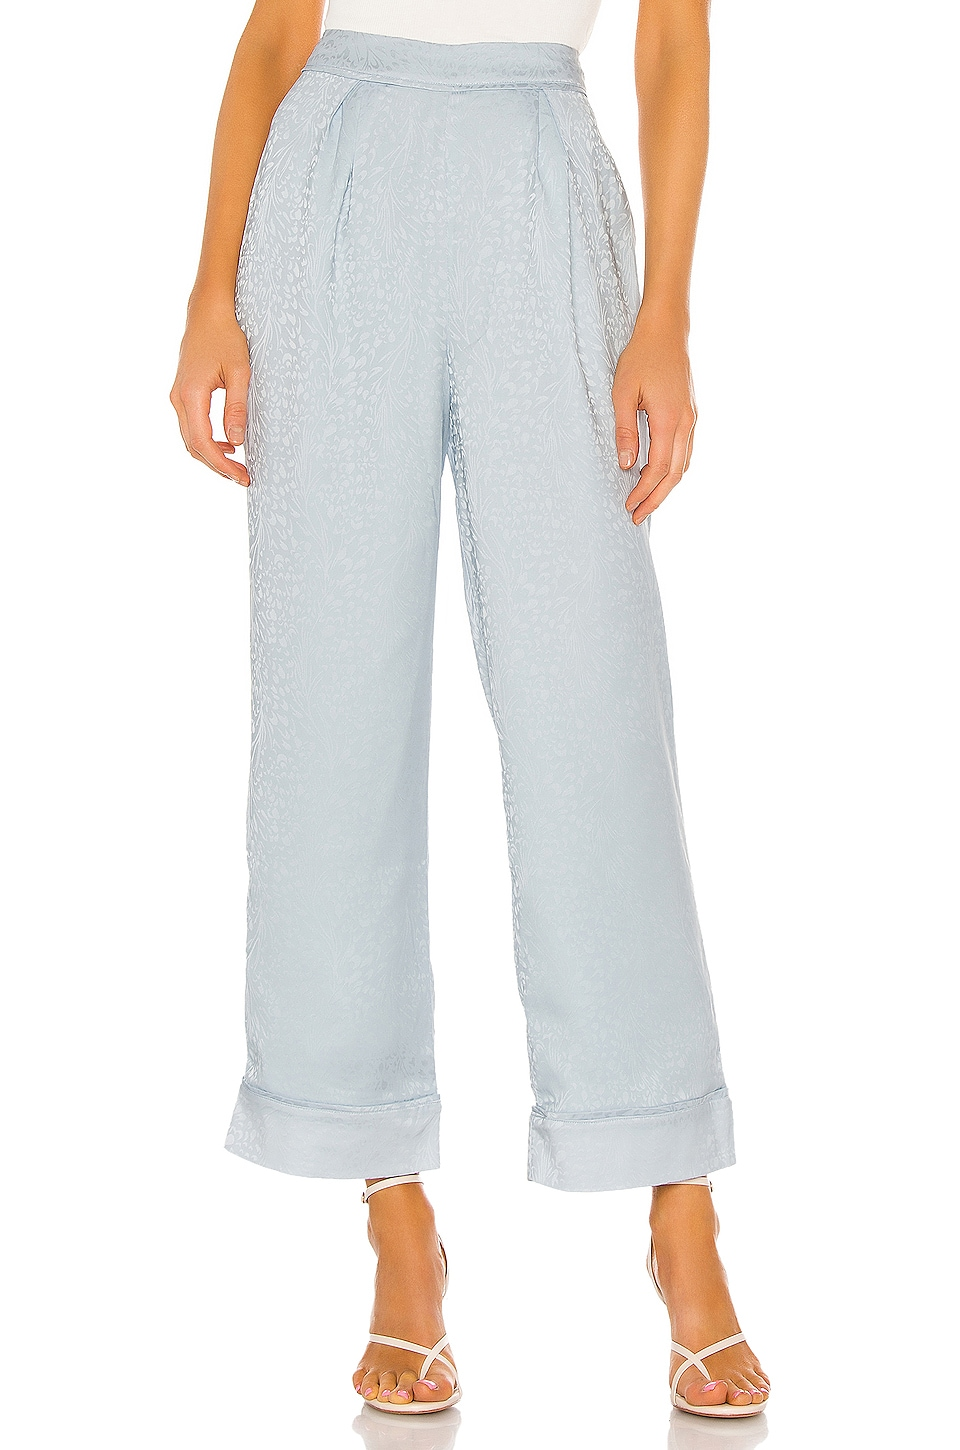 House of Harlow 1960 x REVOLVE Amaya Pant in Dusty Blue